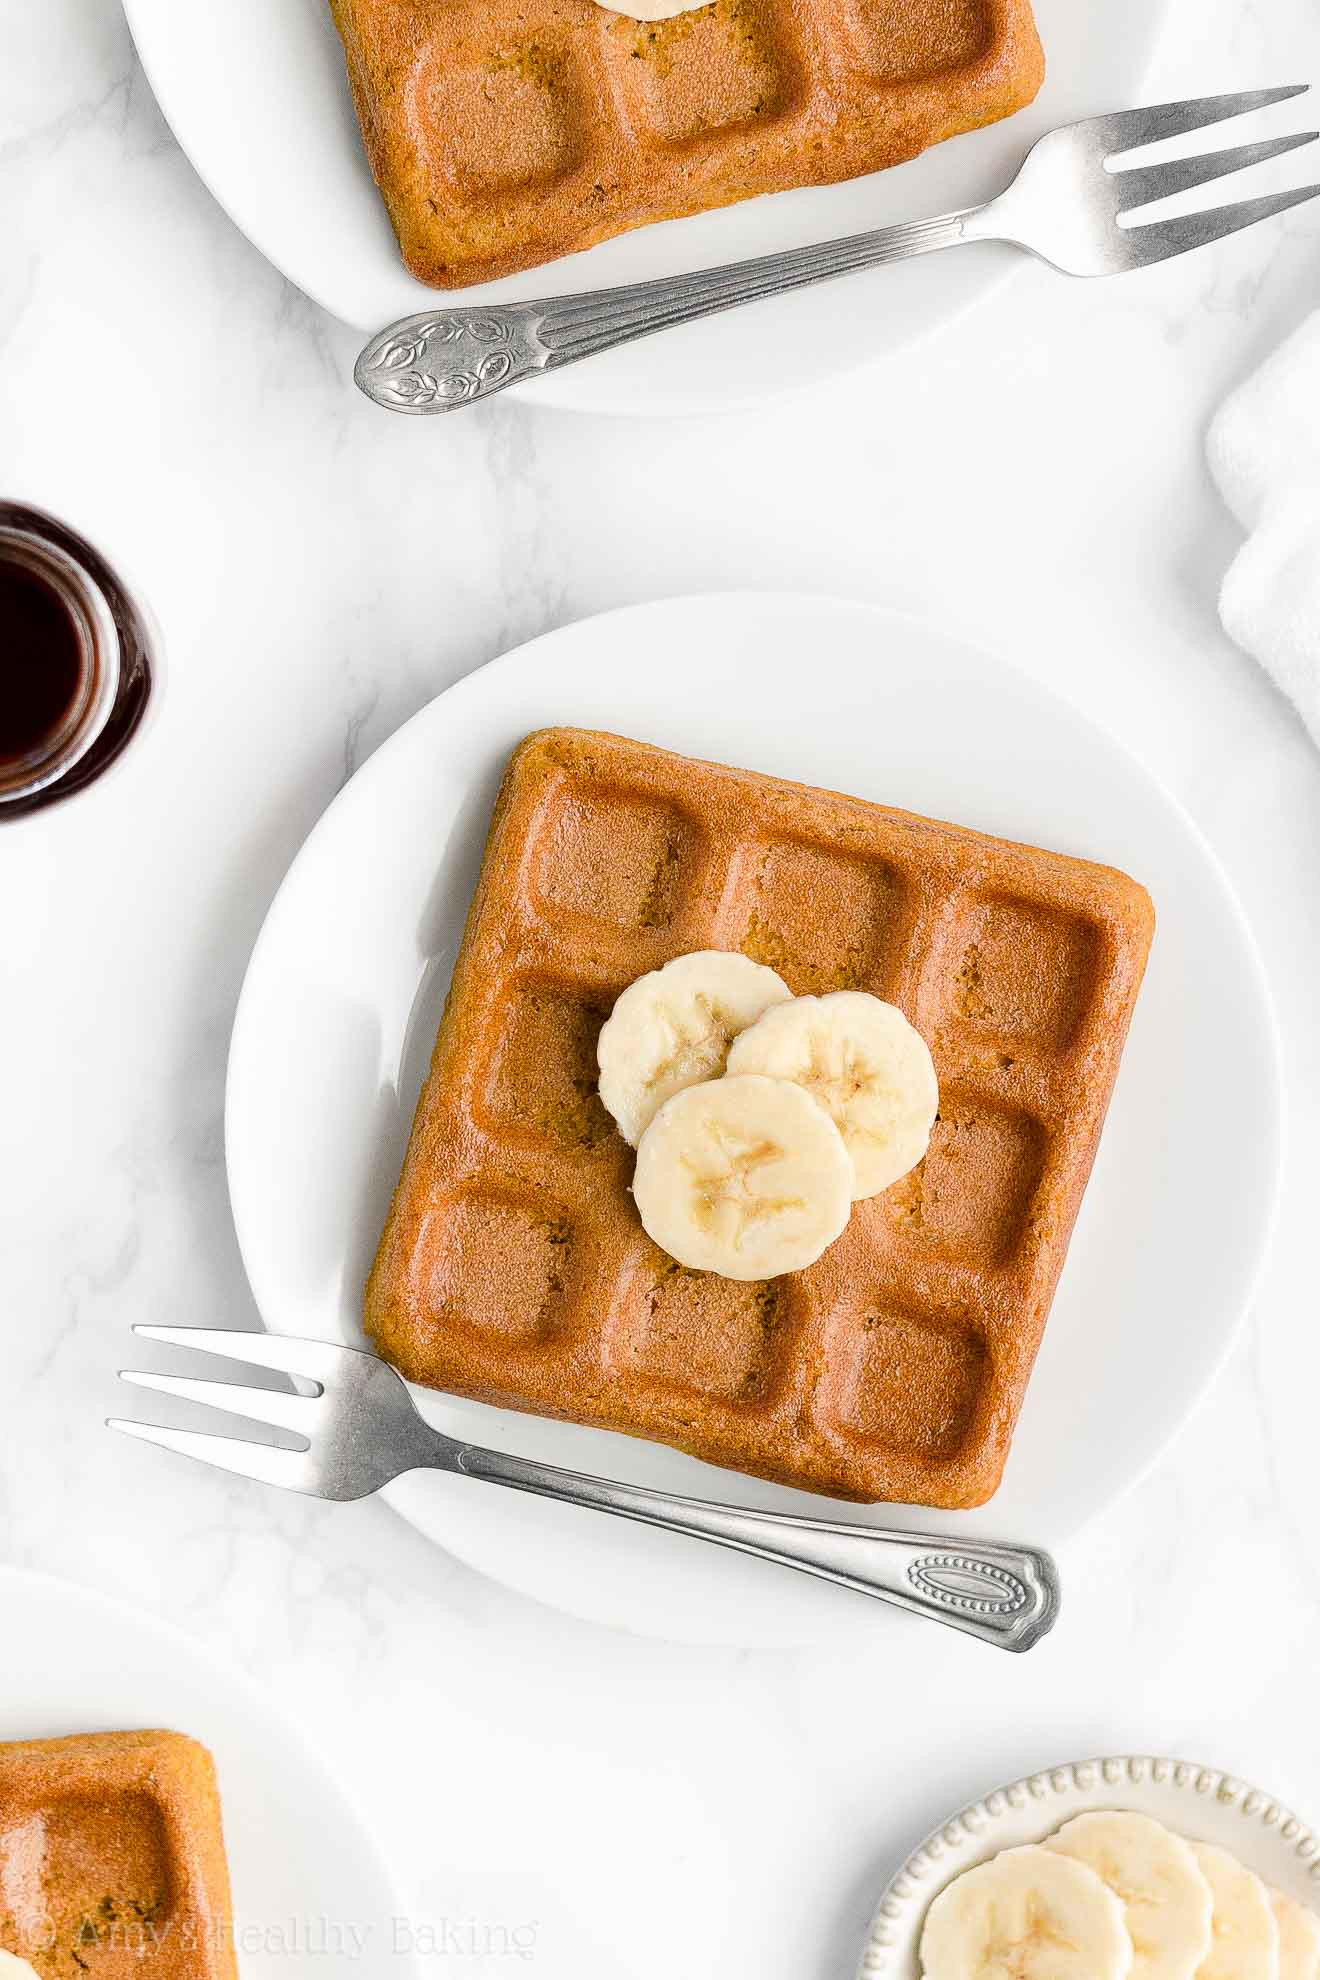 Best Easy Healthy Whole Wheat Sugar Free Dairy Free Crispy Fluffy Banana Waffles